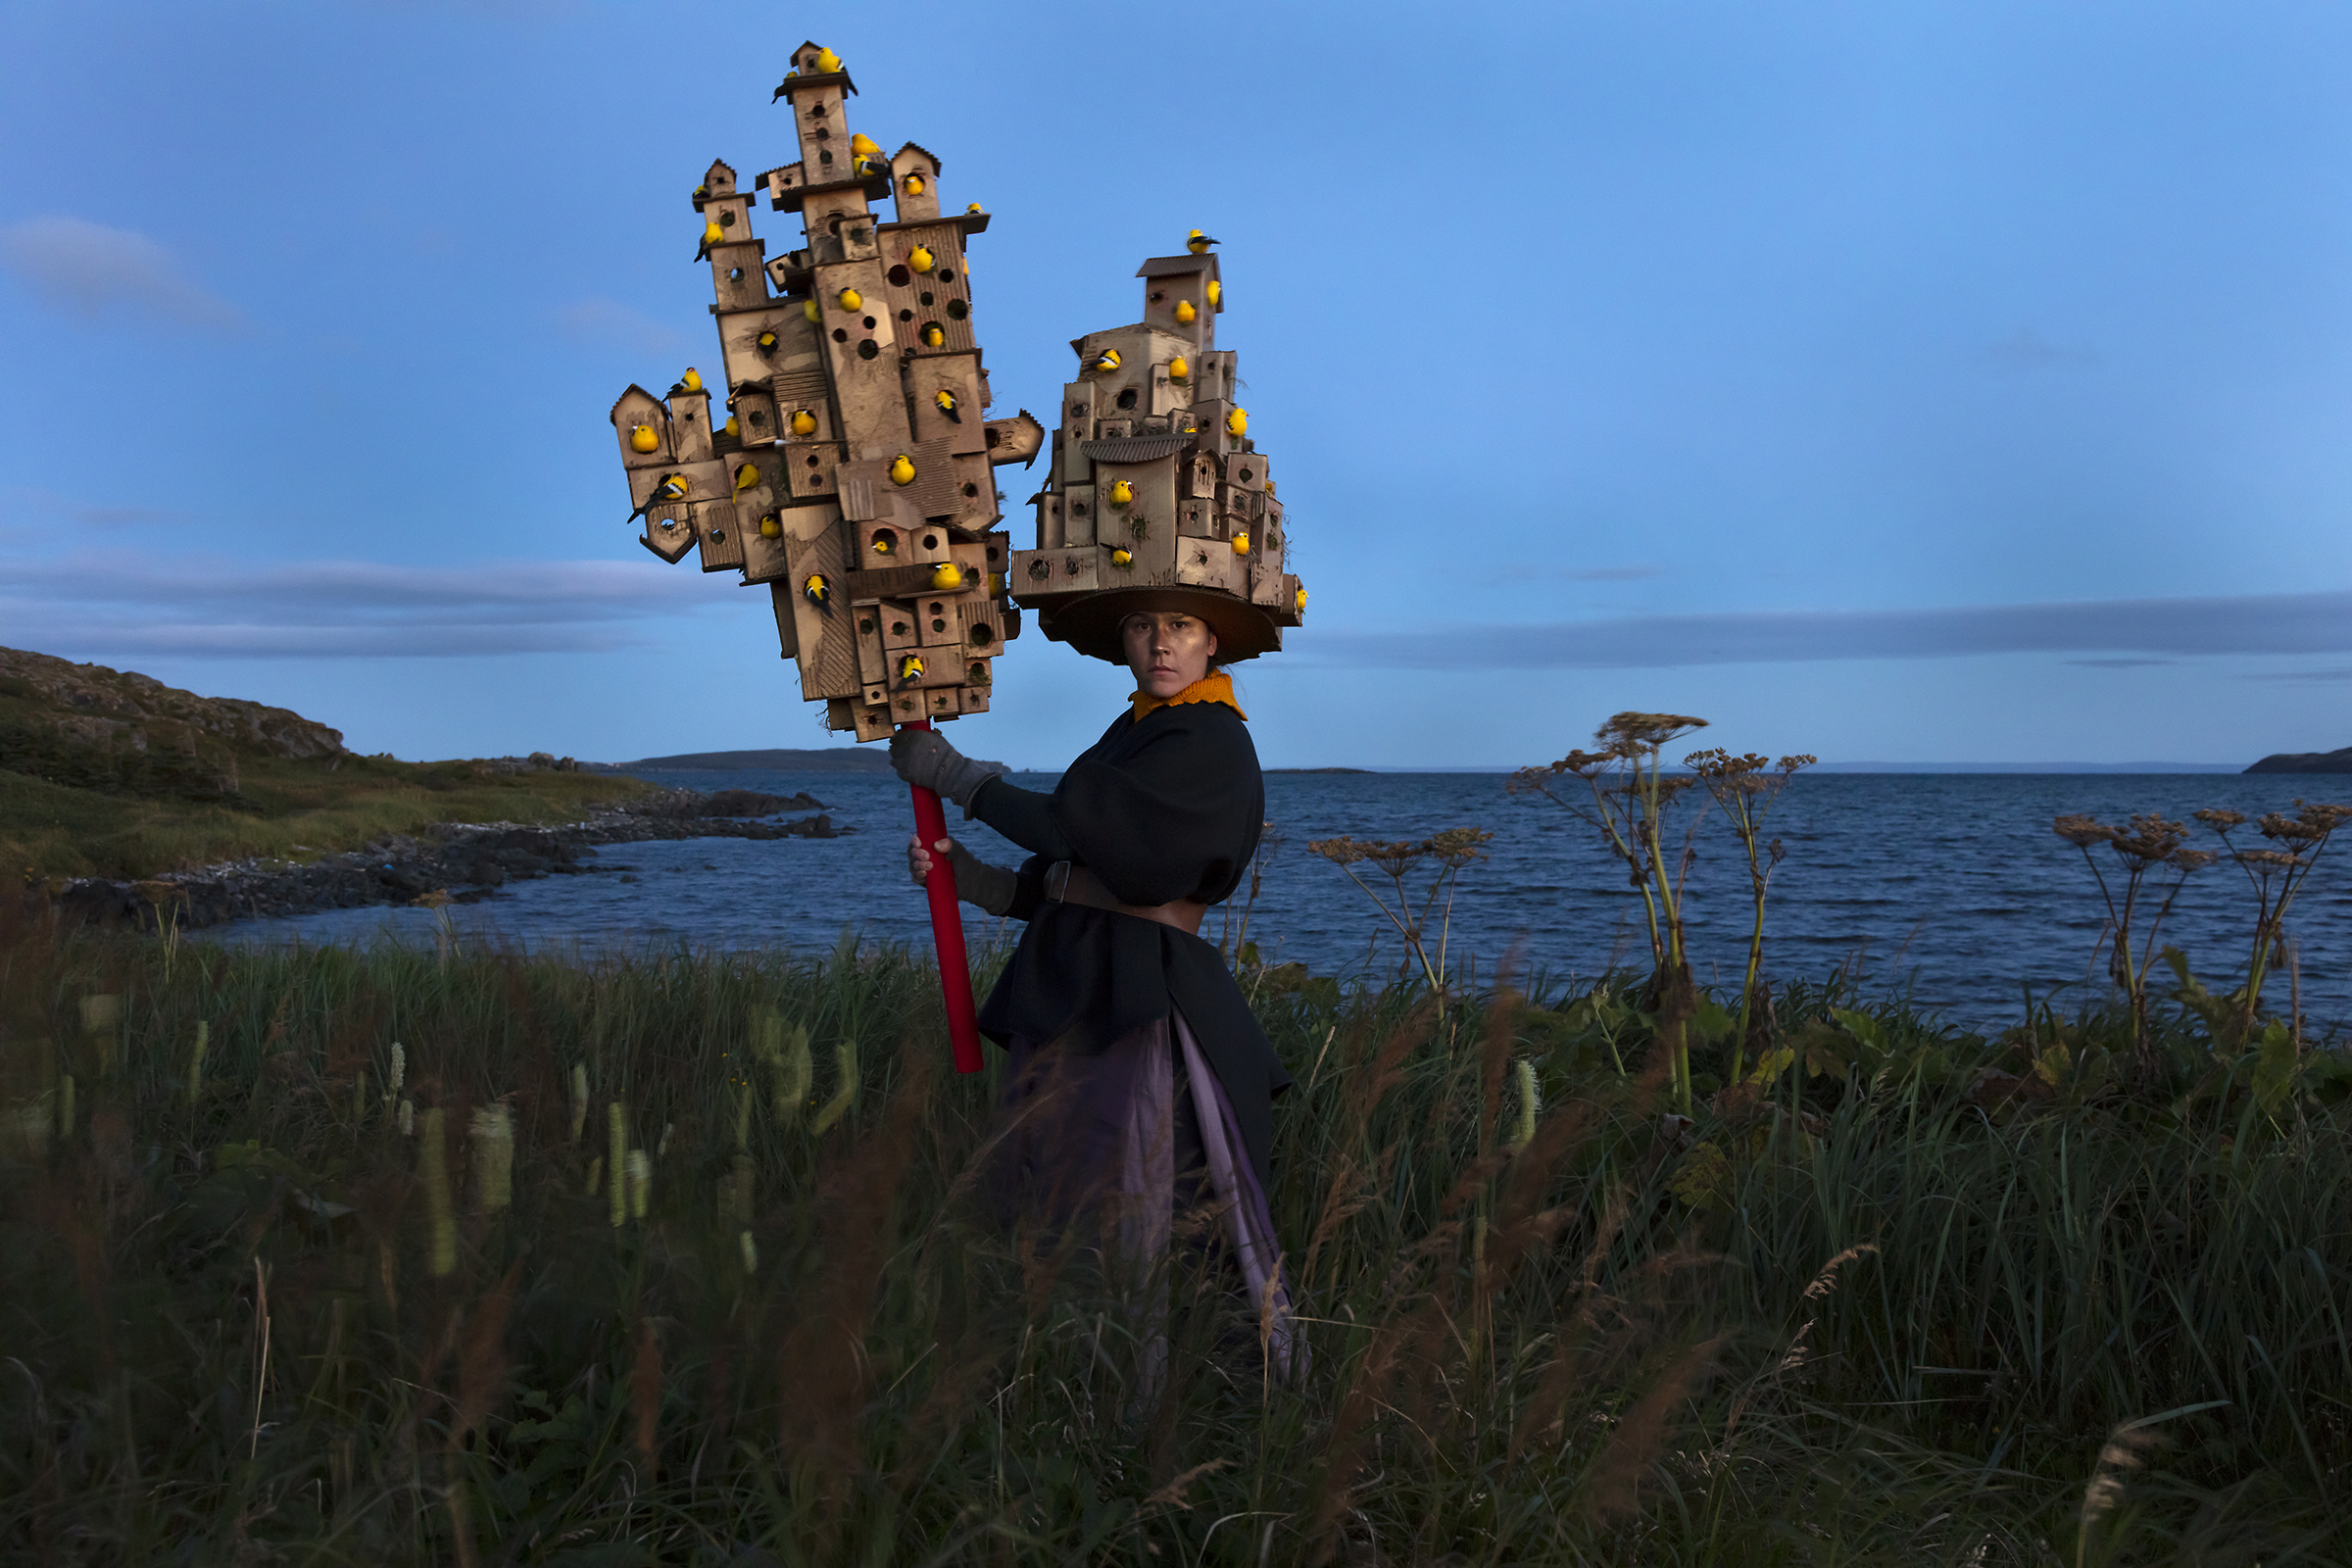 Meryl McMaster, Harbourage For a Song, 2019. From the series As Immense as the Sky. Courtesy of the artist, Stephen Bulger Gallery and Pierre-François Ouellette art contemporain.